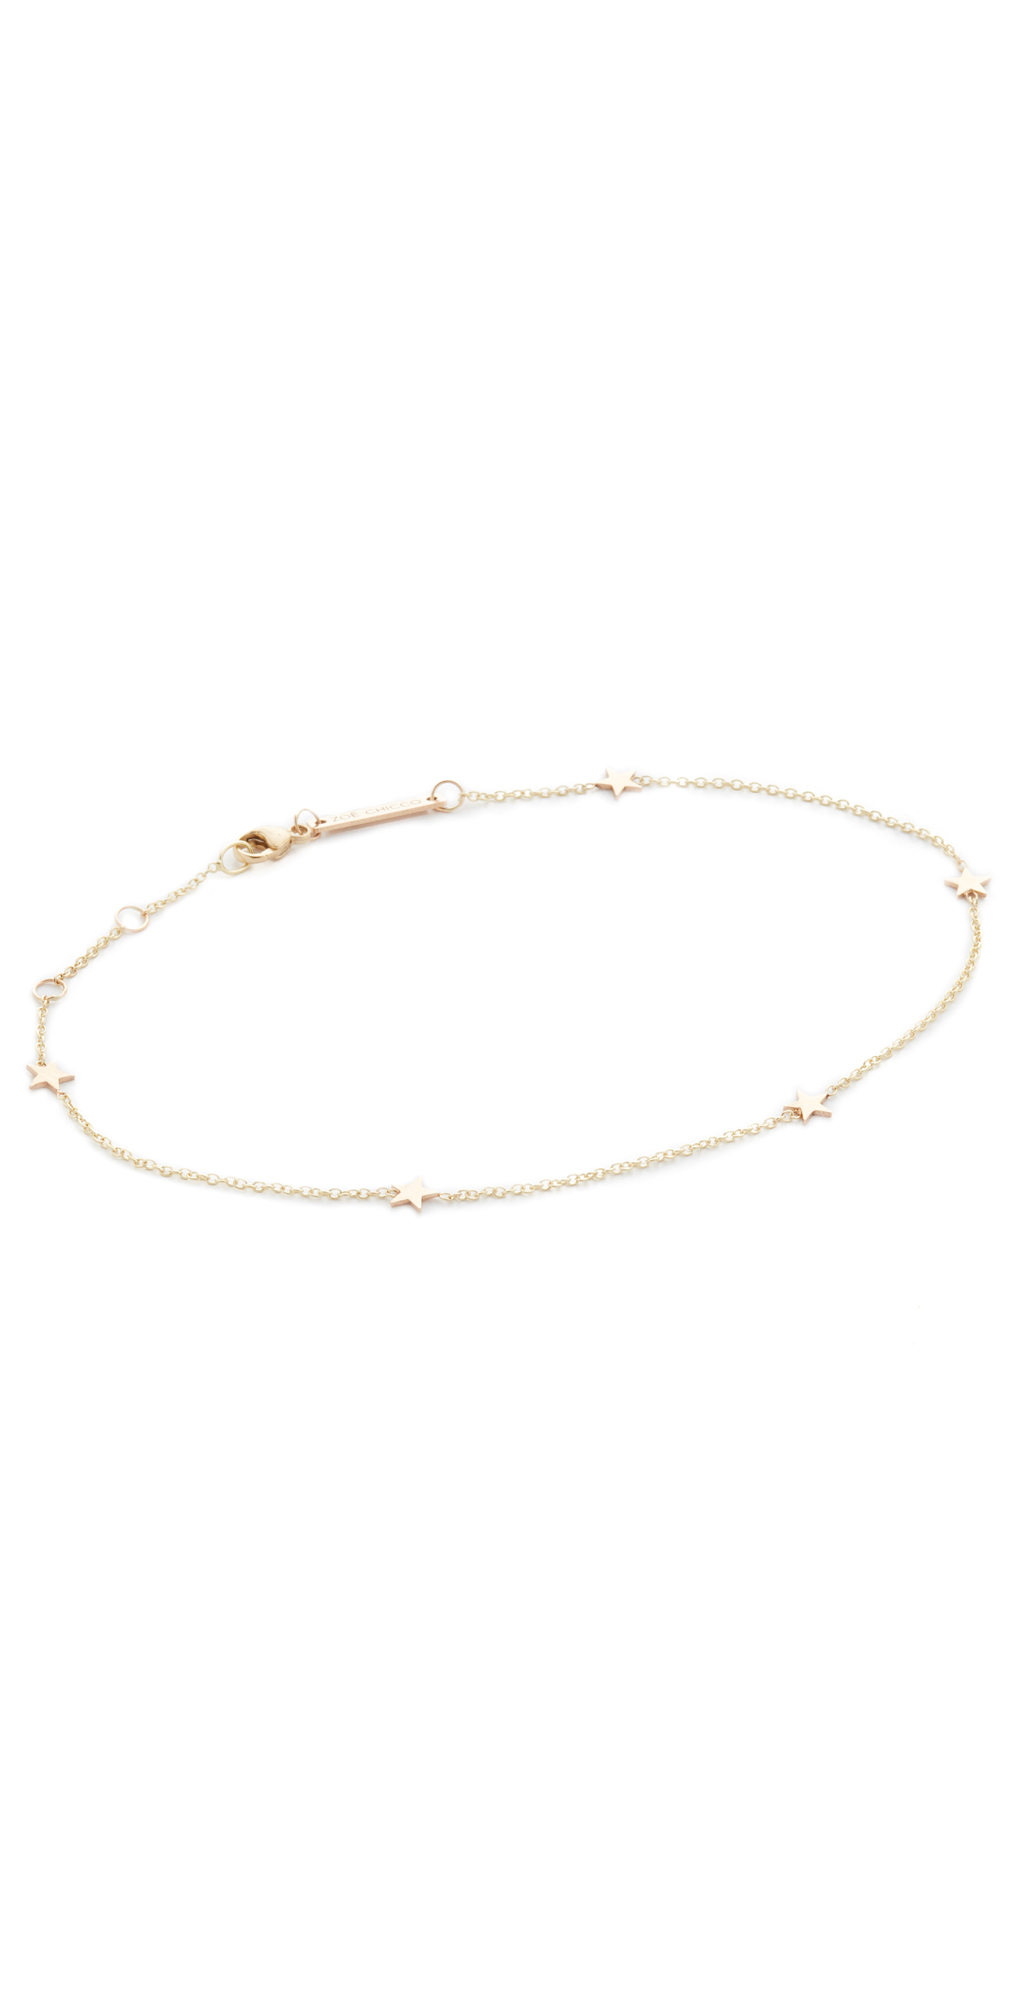 14k Gold Itty Bitty Anklet Zoe Chicco